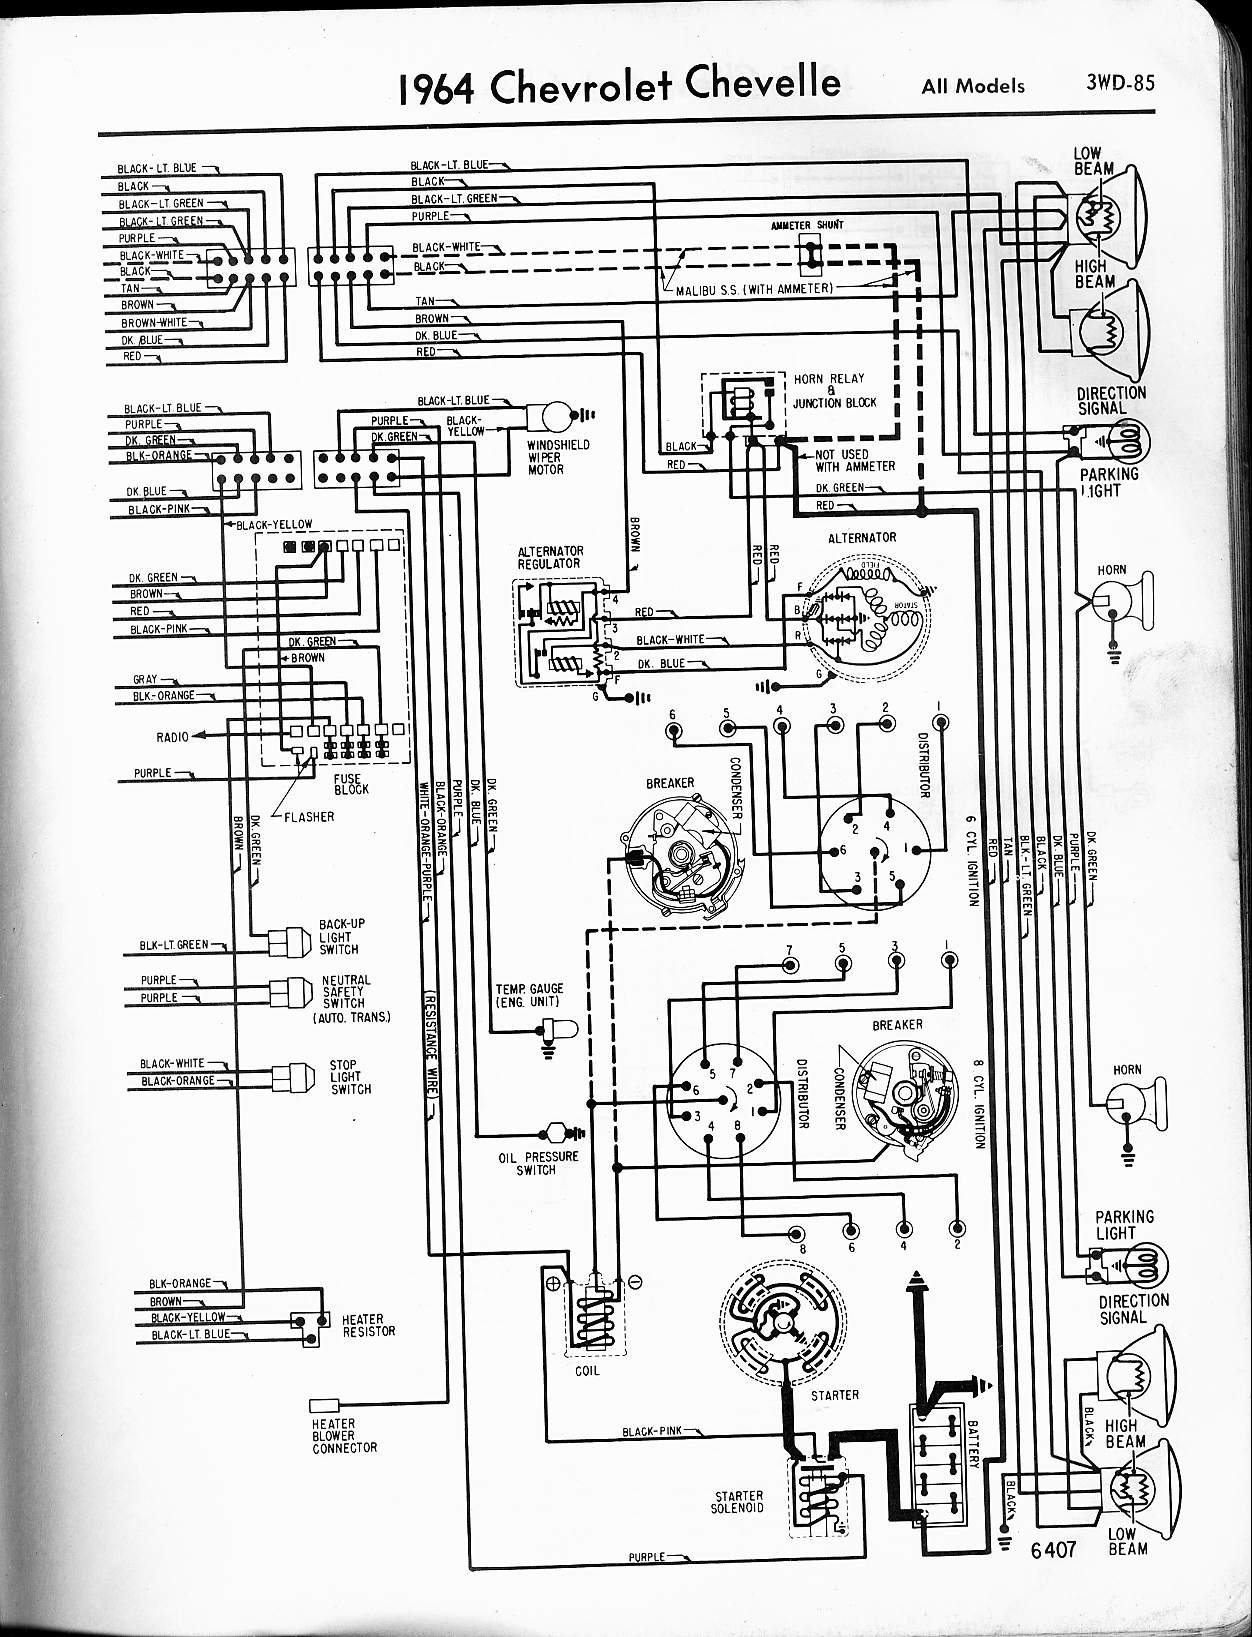 67 Chevelle 396 Engine Diagram | Wiring Liry on 1968 amc javelin wiring diagram, 68 chevelle ignition diagram, 1968 chevy impala wiring diagram, 1969 chevy camaro wiring diagram, 1968 pontiac catalina wiring diagram, 1968 jaguar xke wiring diagram, 1968 jeep cj5 wiring diagram, 1968 chevy c10 wiring, 1955 chevy bel air wiring diagram, 68 impala wiring diagram, 1968 chevy pickup wiring diagram, 1963 chevy nova wiring diagram, 1968 dodge dart wiring diagram, 1968 mustang tach wiring diagram, 1968 ford falcon wiring diagram, 1968 cadillac deville wiring diagram, 1968 chevy van wiring diagram, 1985 el camino ignition wiring diagram, 1968 oldsmobile cutlass wiring diagram, 1968 chevy c10 fuse block,